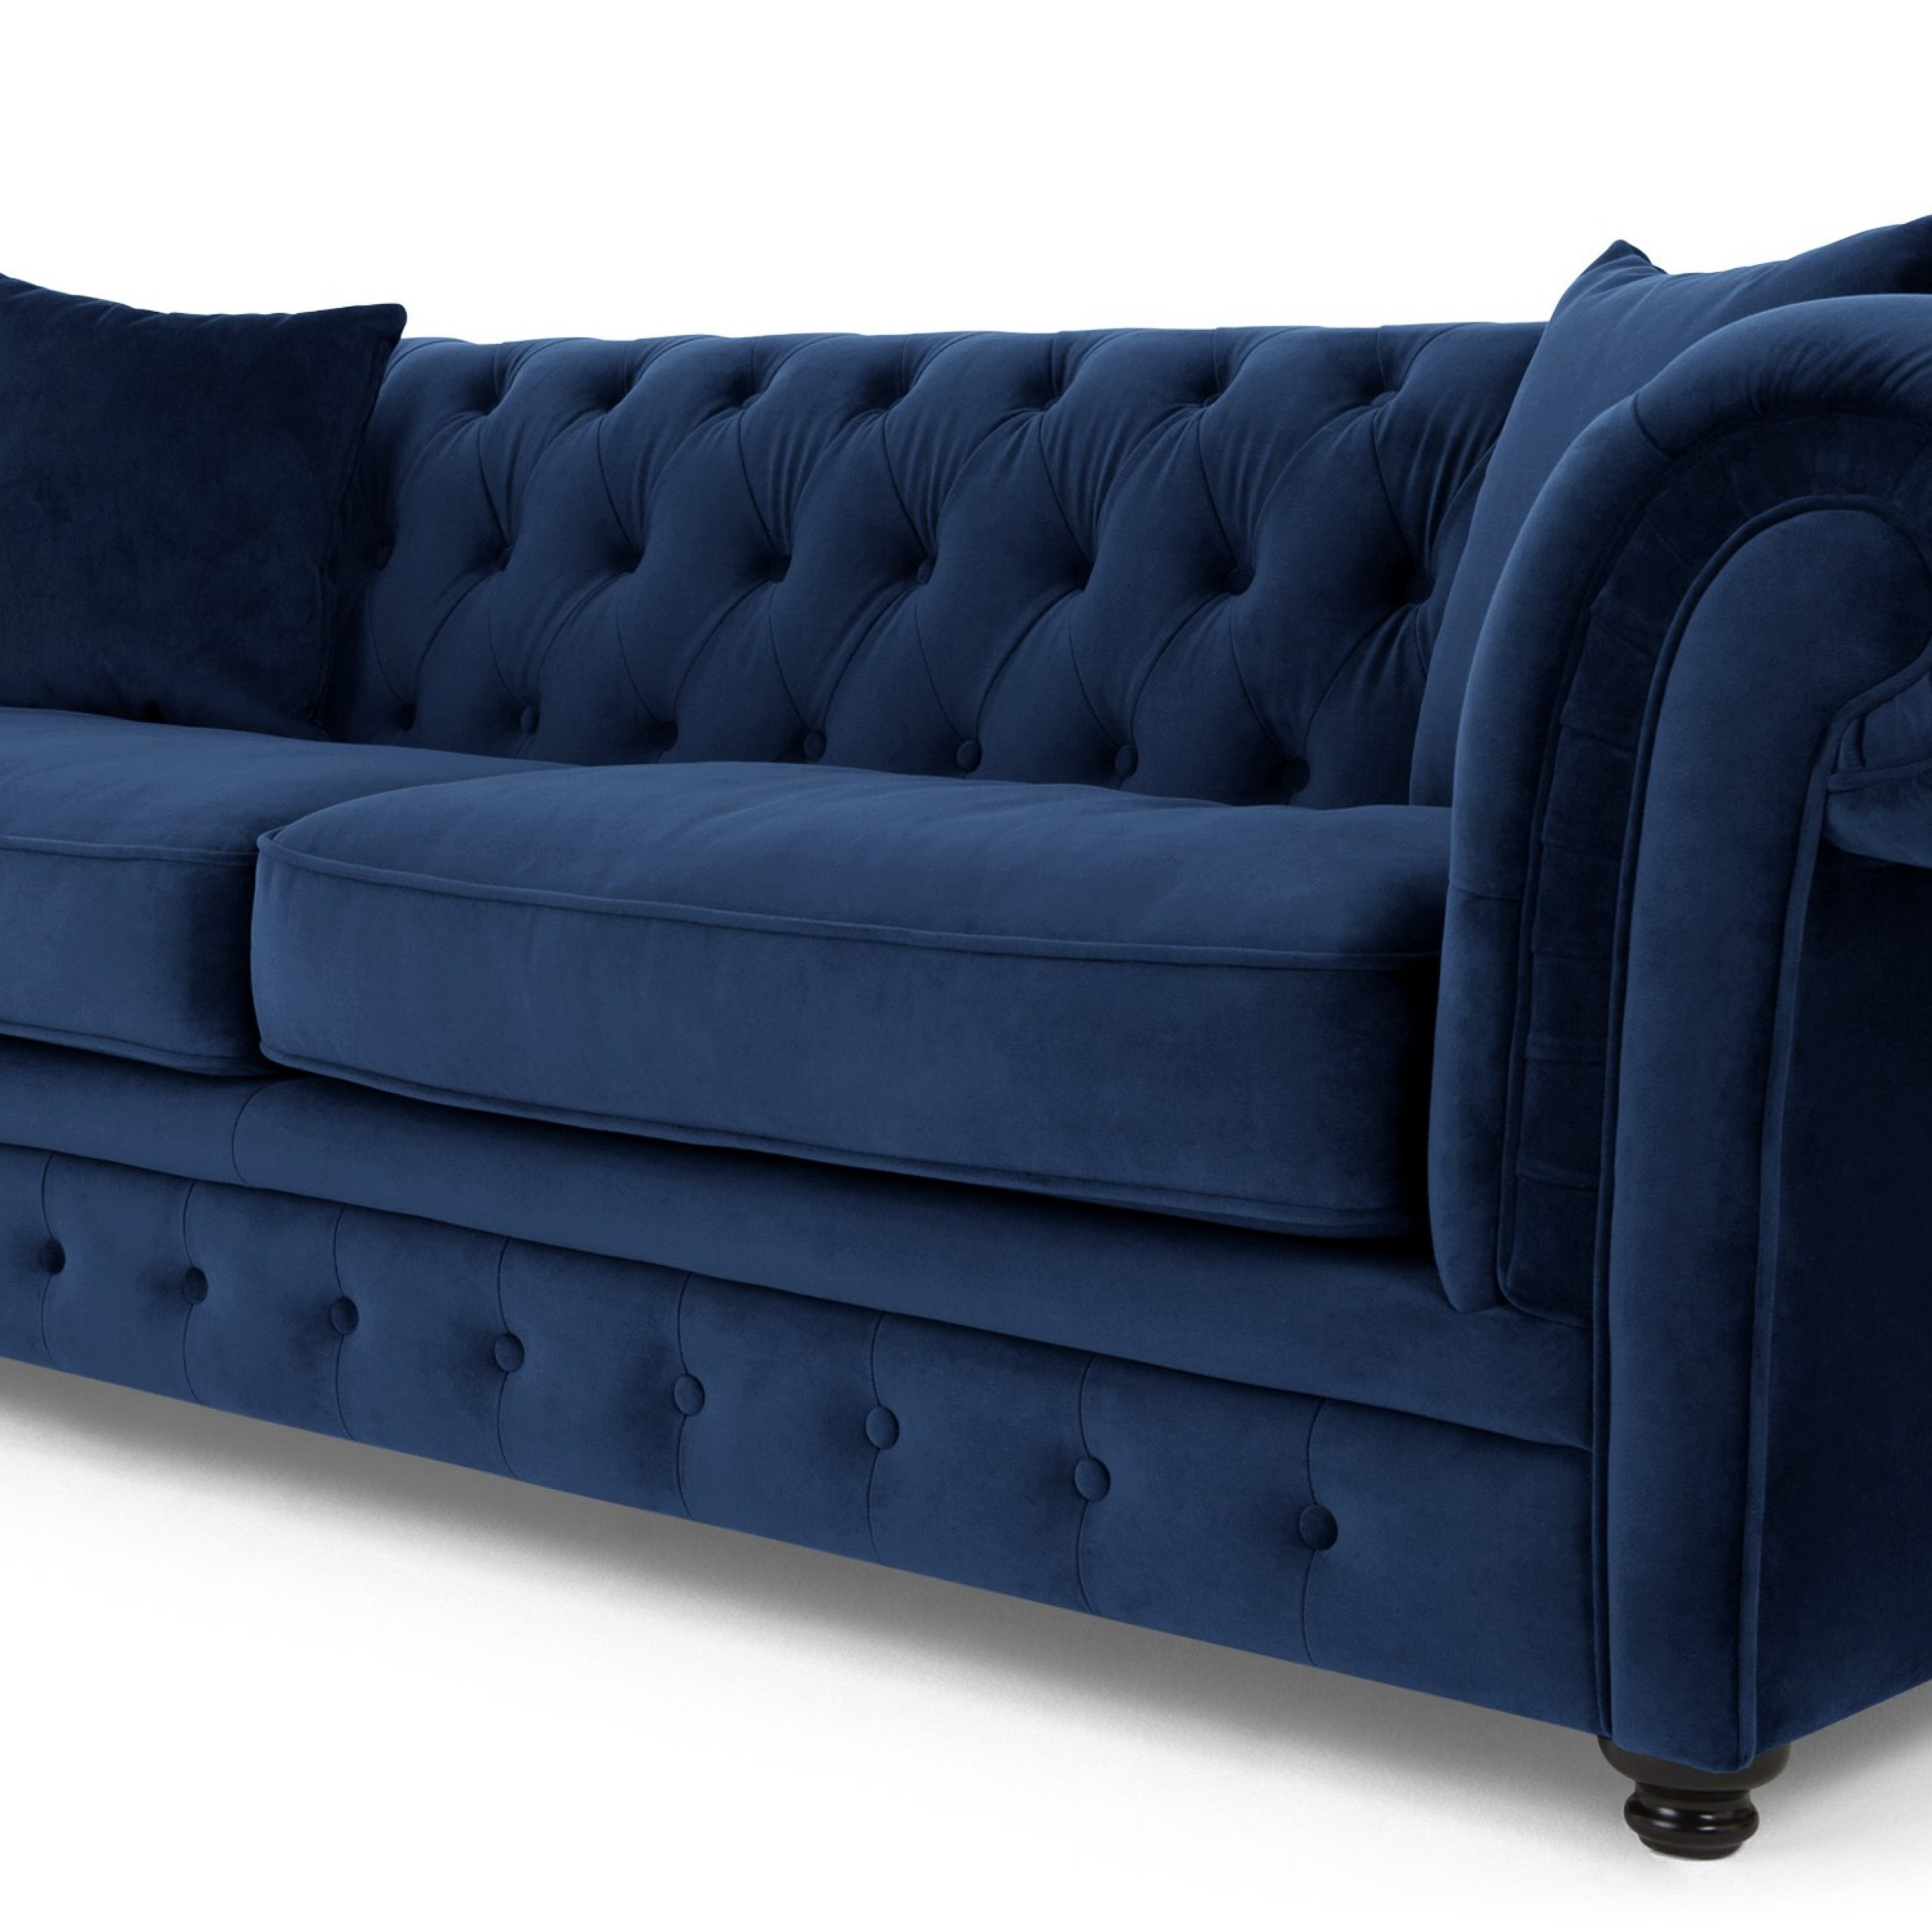 Branagh 3 Seater Chesterfield Sofa, Electric Blue Velvet In Chesterfield Sofas And Chairs (View 13 of 15)